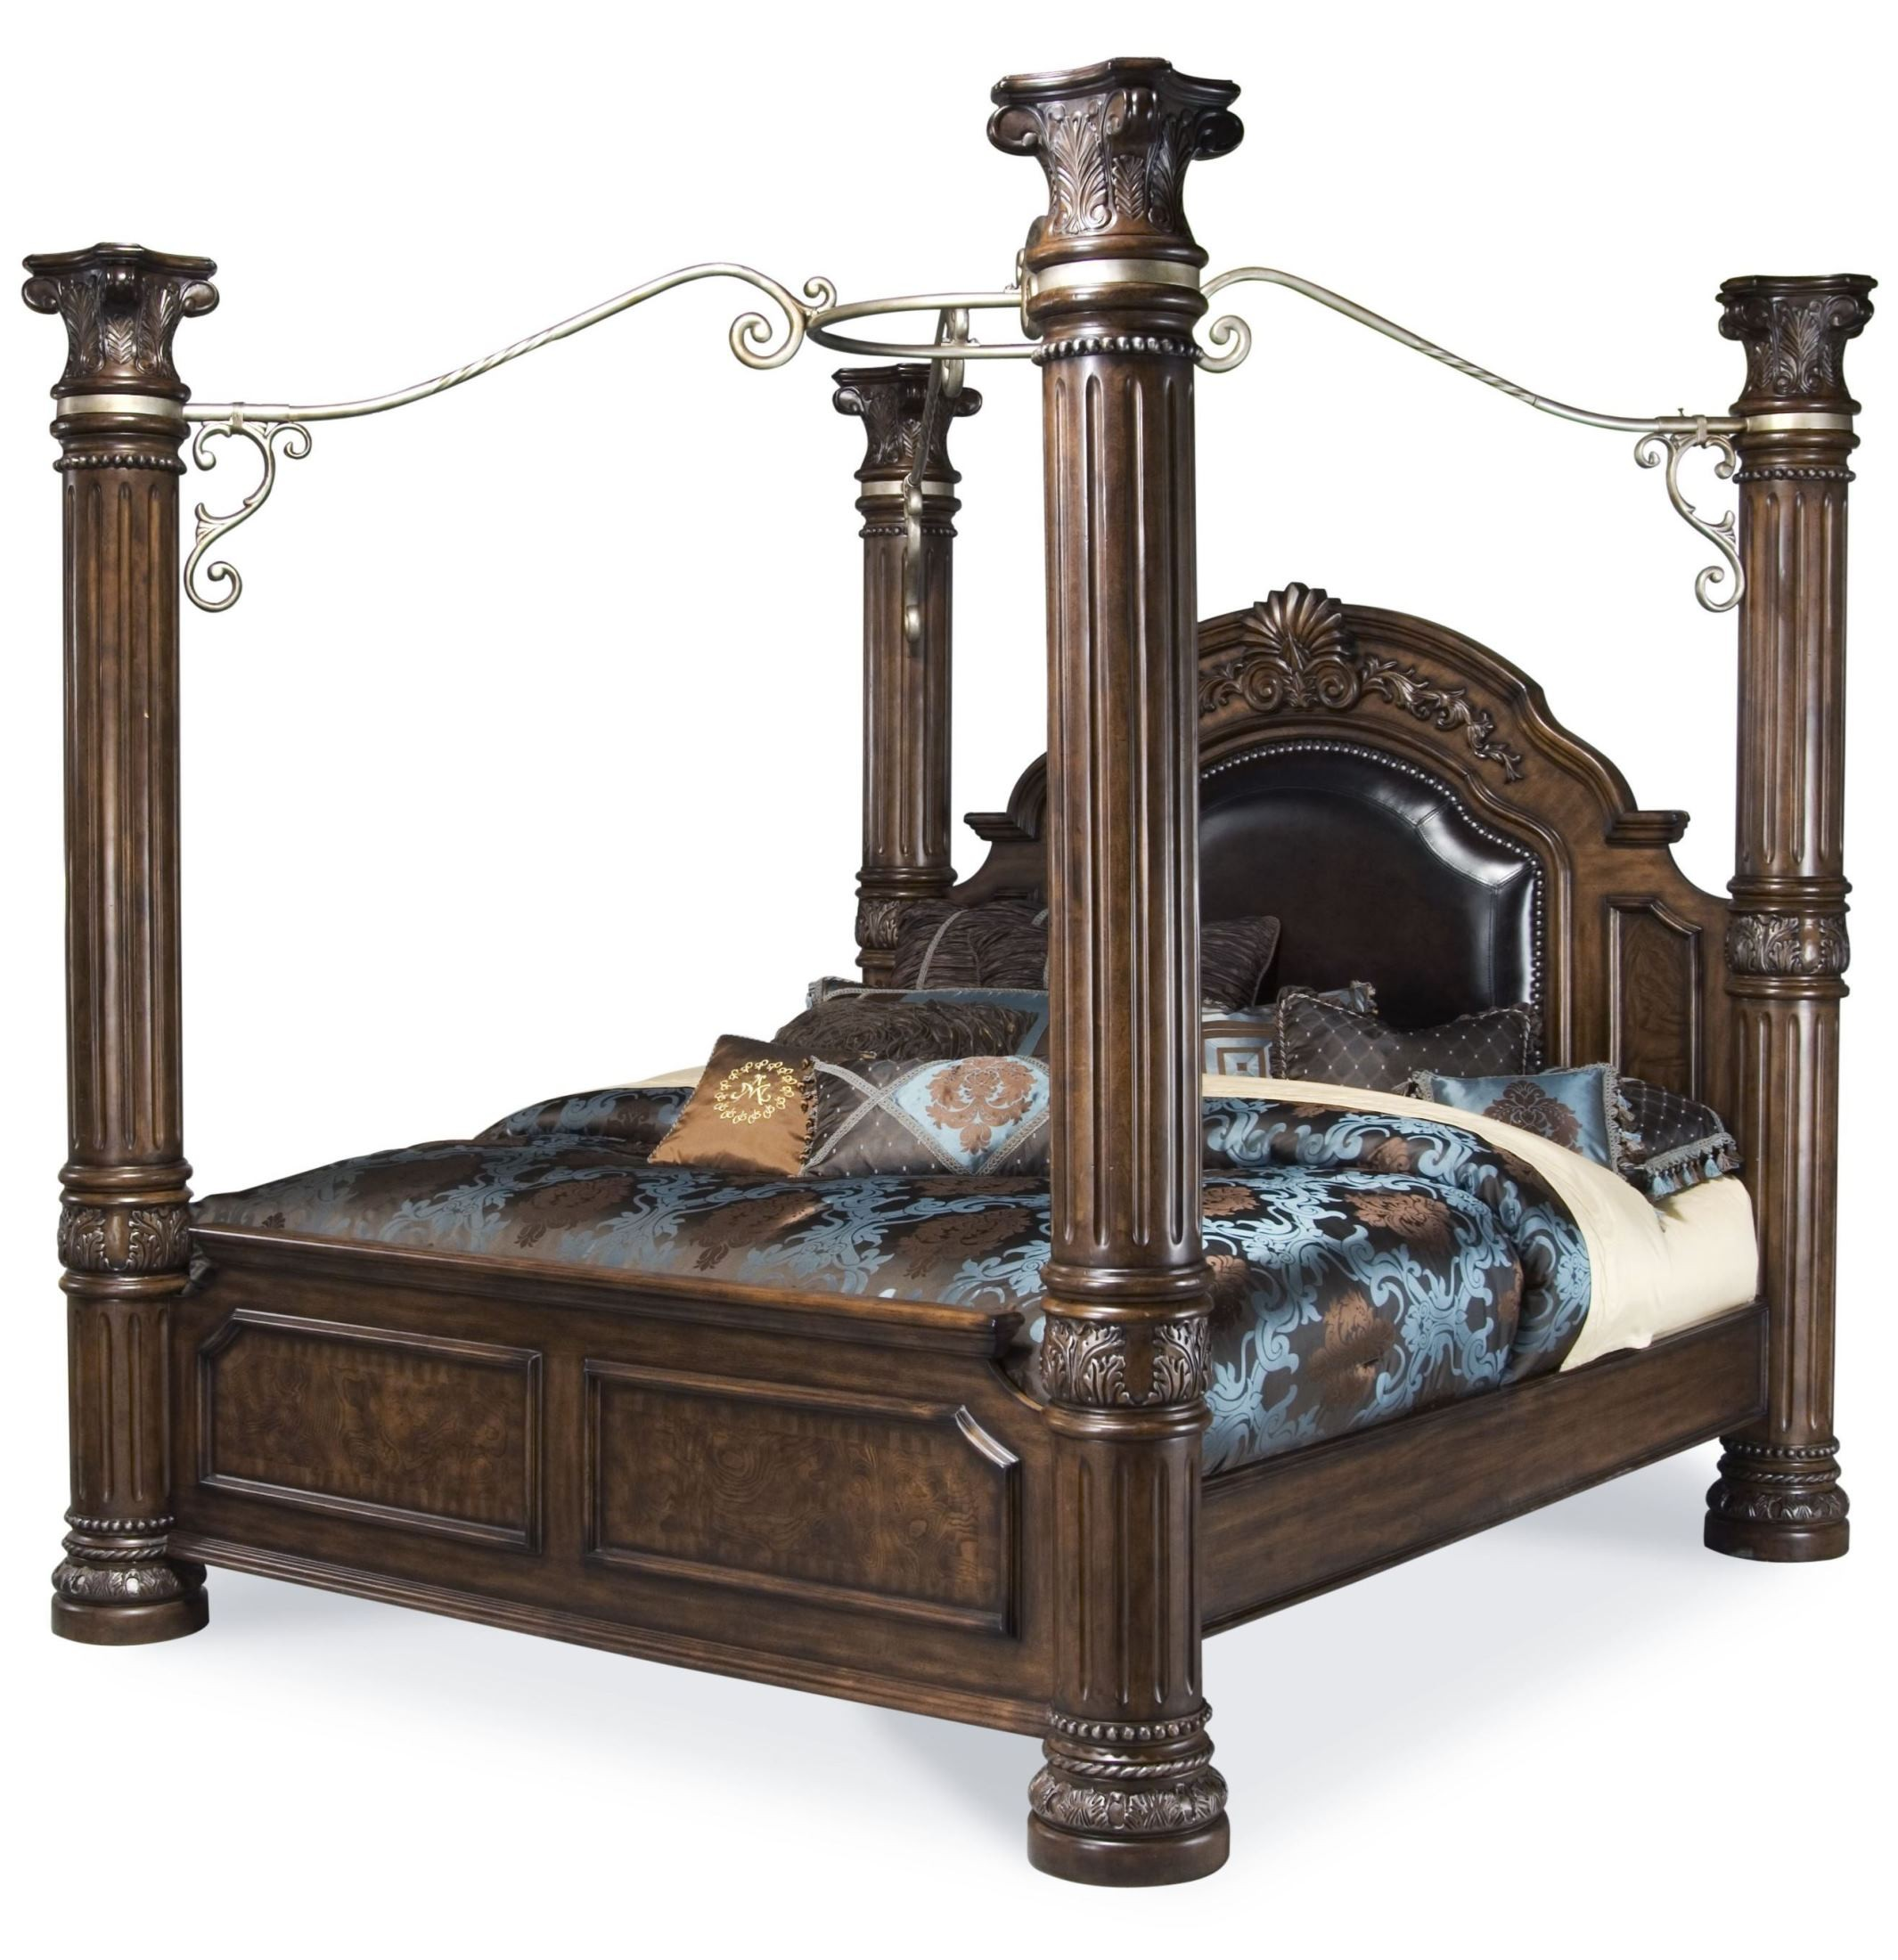 Monte Carlo Ii Cafe Noir Poster Canopy Bedroom Set From Aico N53000qncan 46 Room Coleman